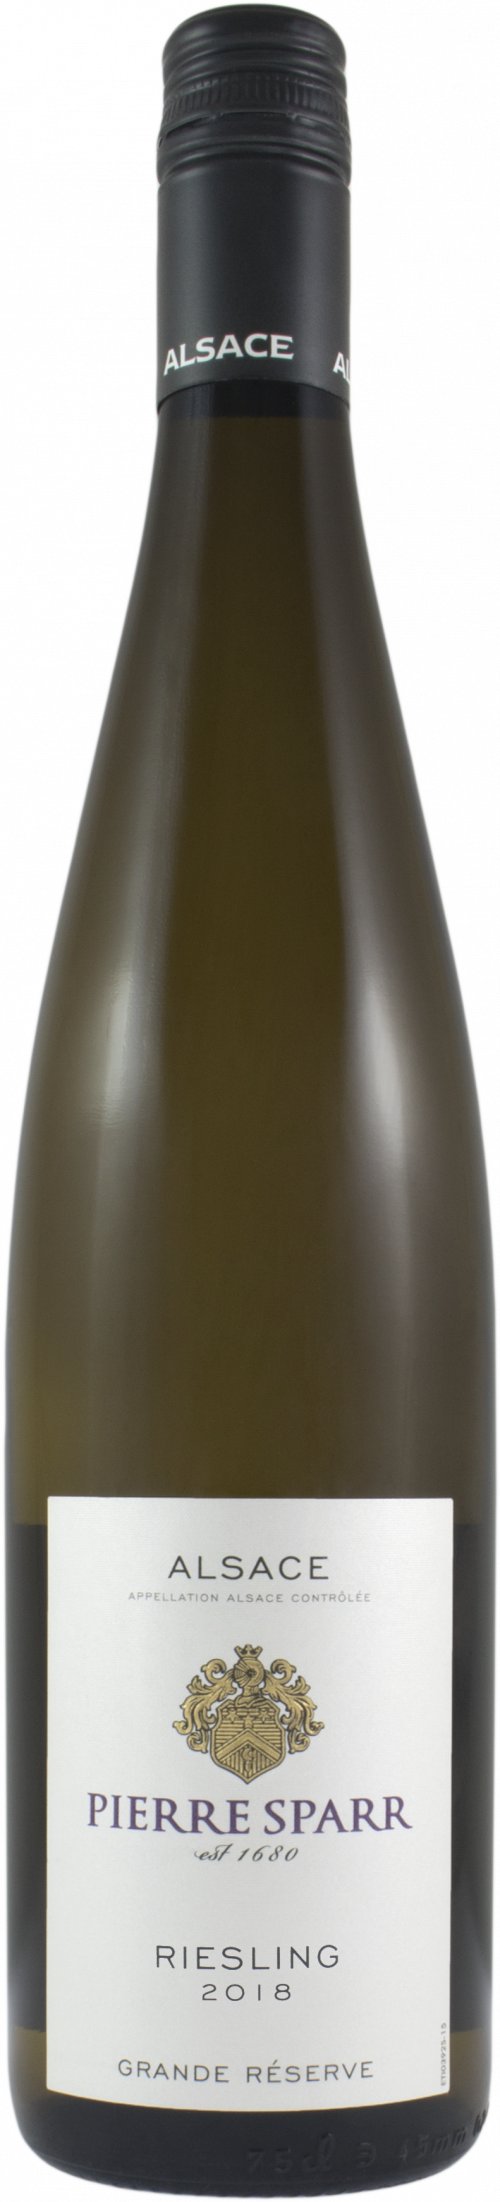 2019 Pierre Sparr Riesling 750ml